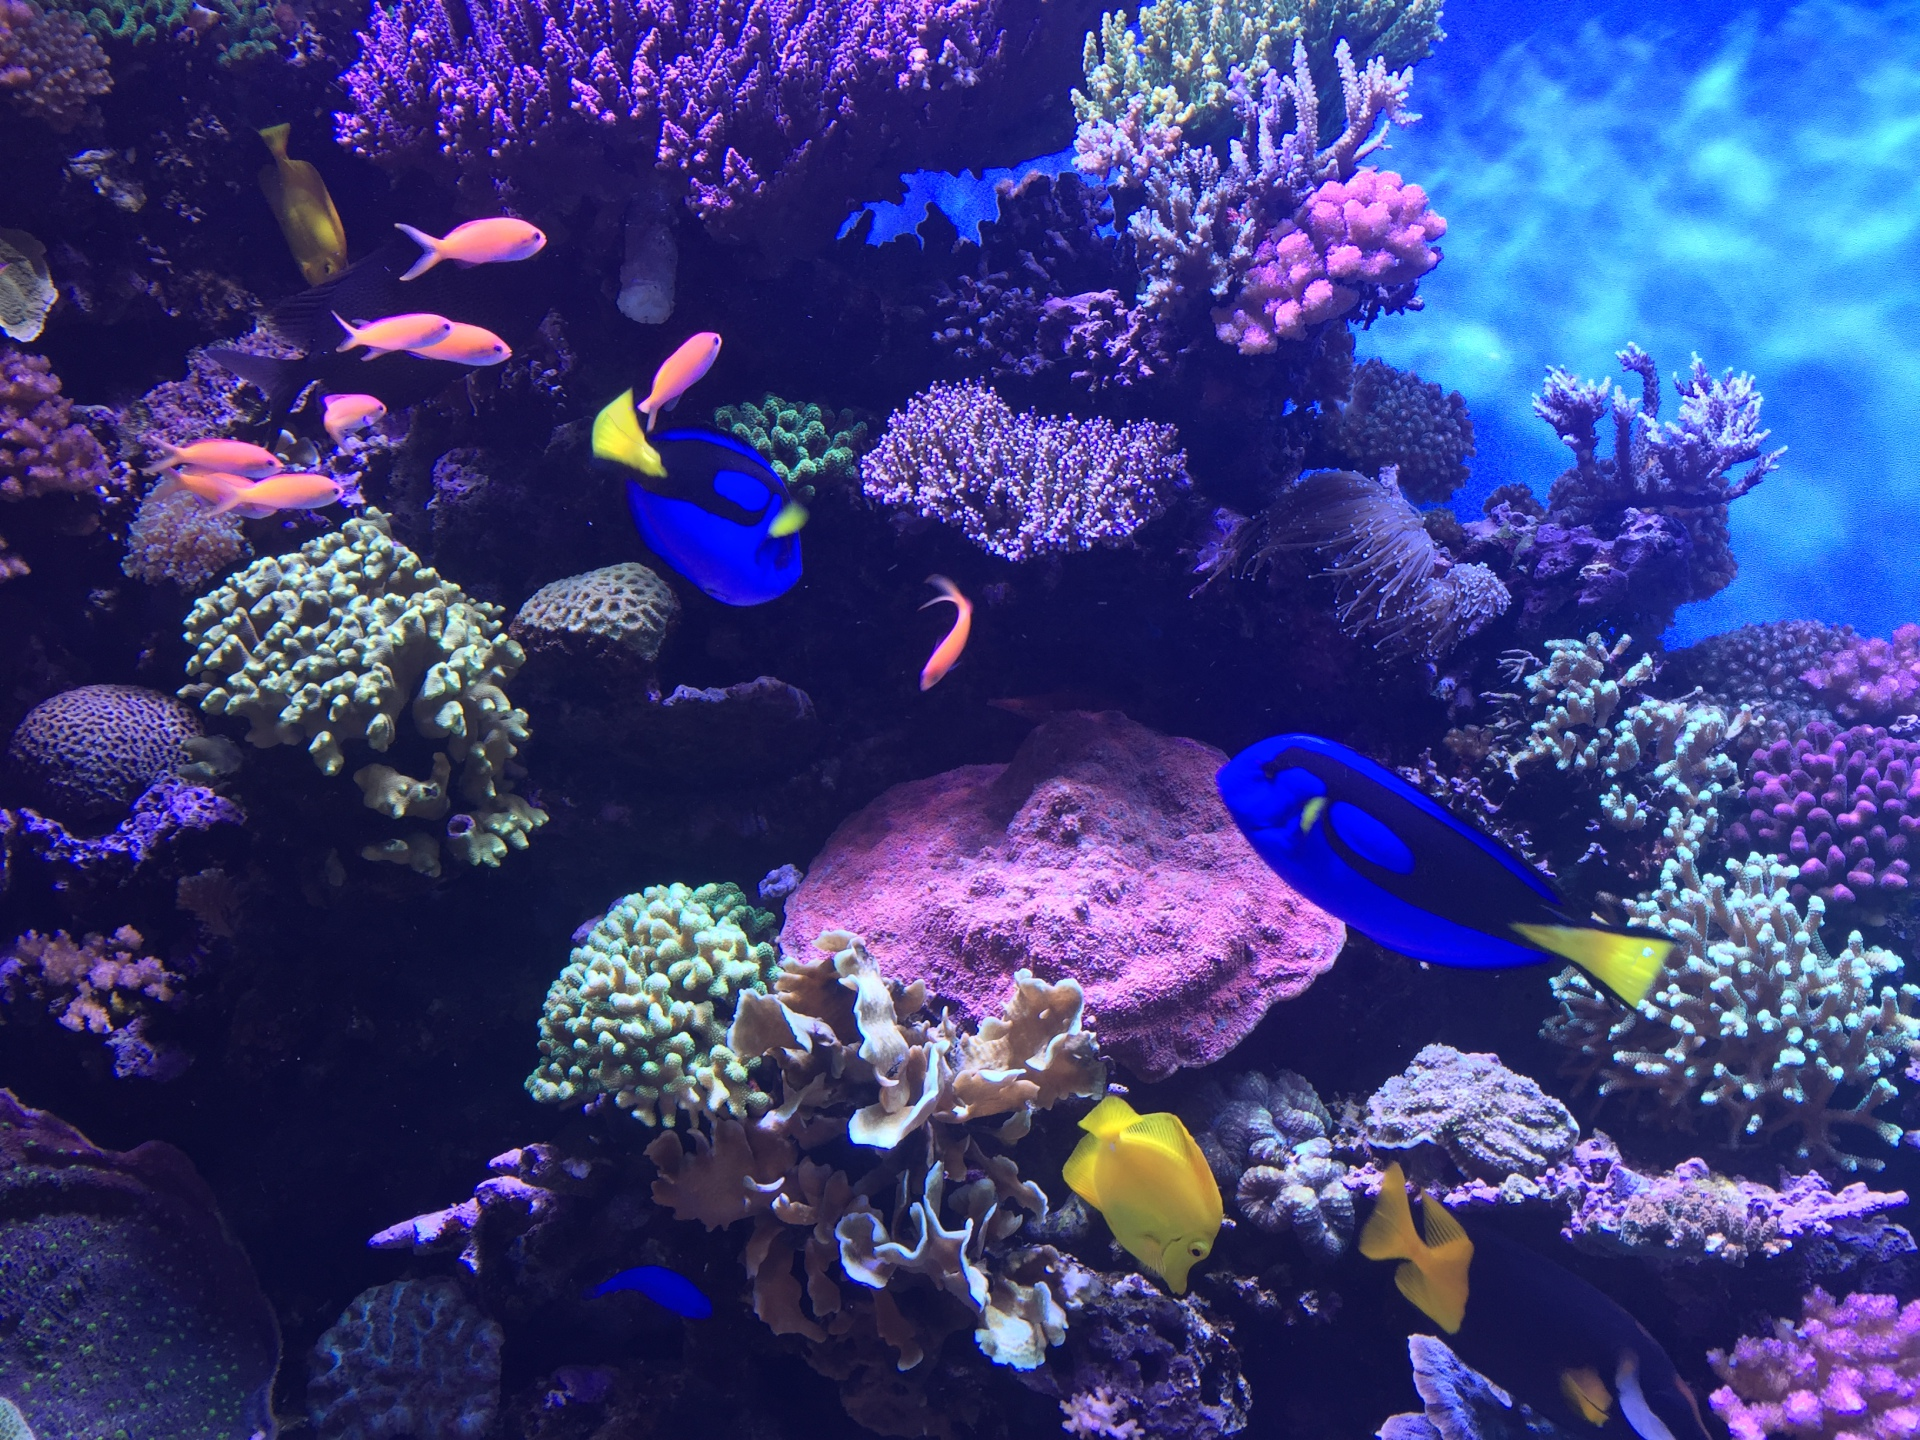 Coral reef snapshot from Monterey Bay